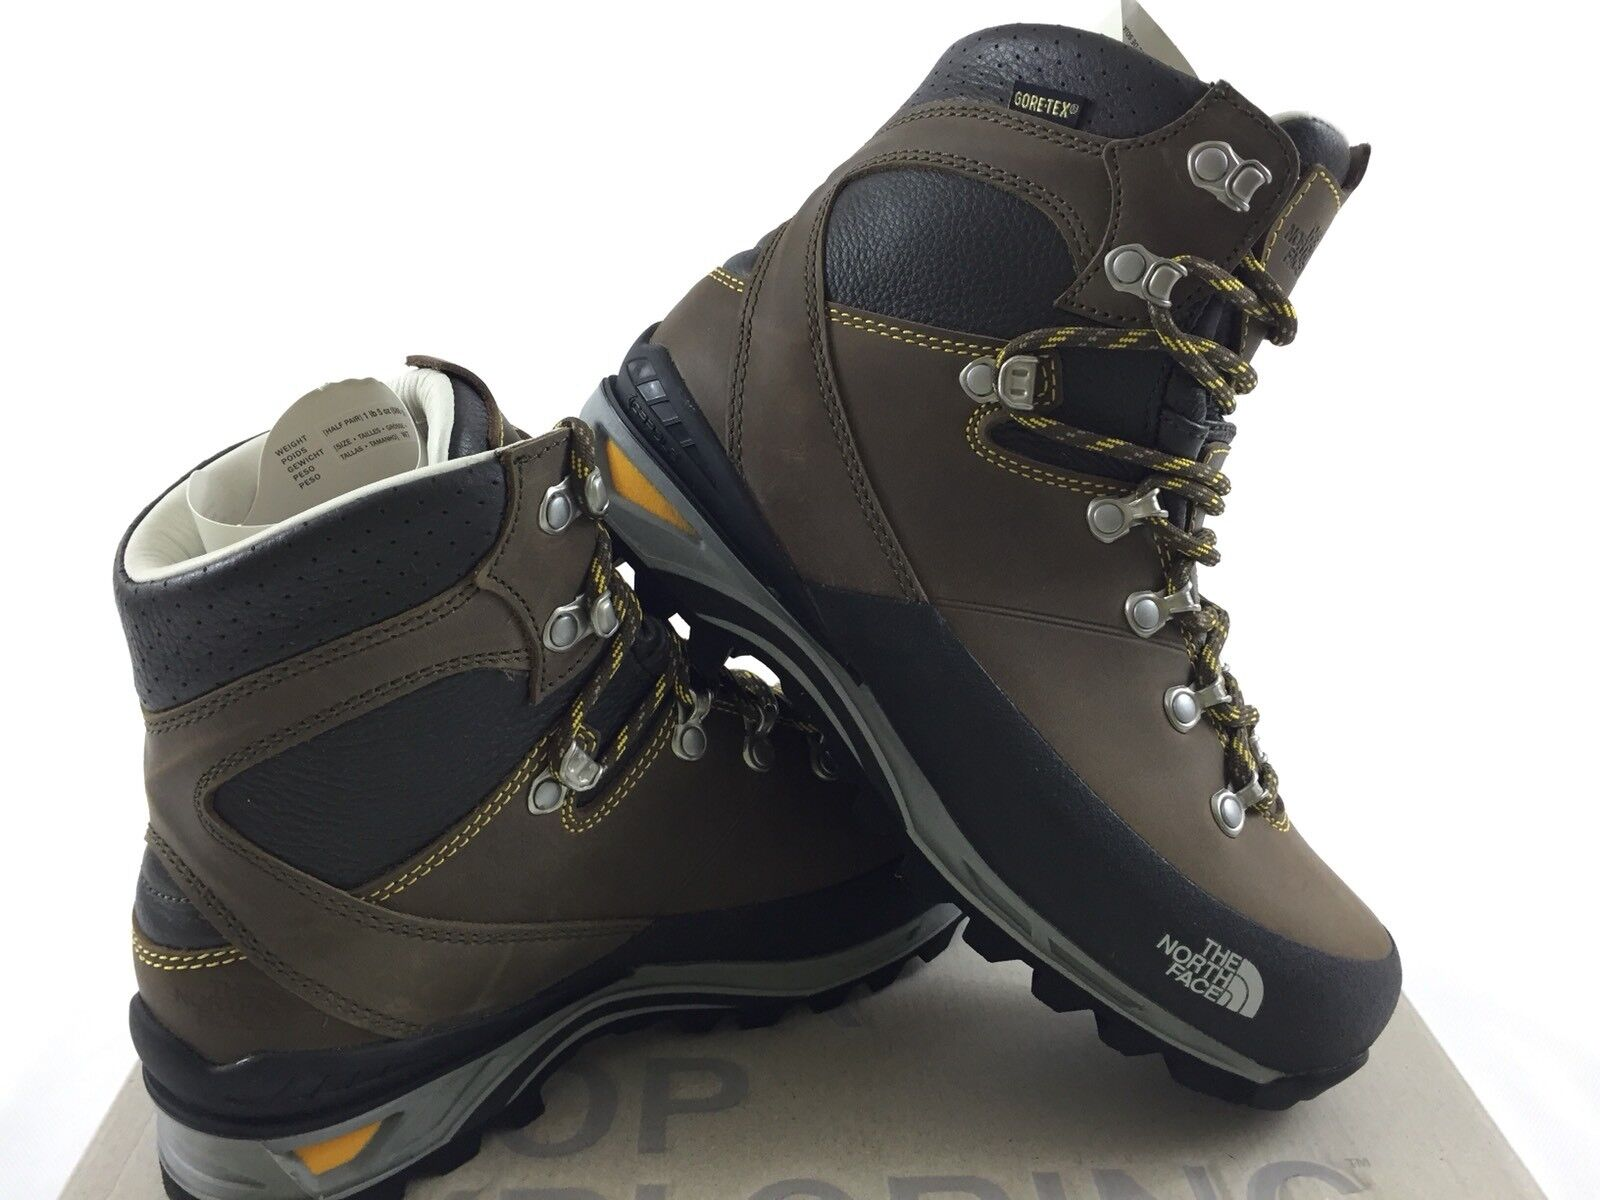 THE NORTH FACE VERBERA BOOTS GTX GORE-TEX VIBRAM WOMEN SHOES NEW SIZE 37